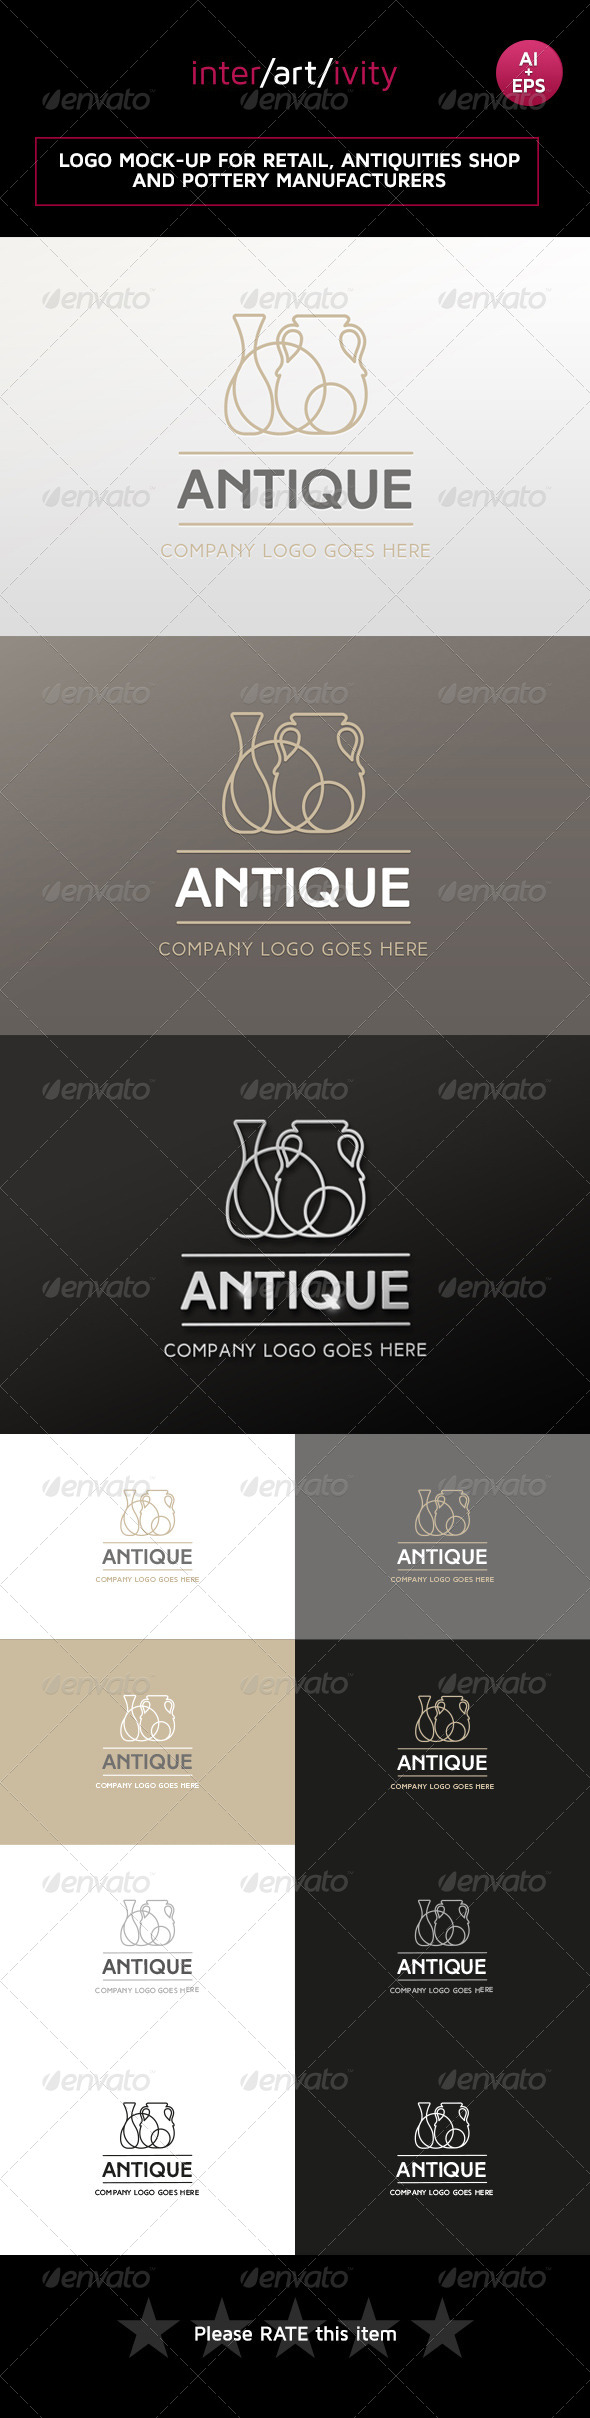 GraphicRiver Logo design for antiques and retail 8415315